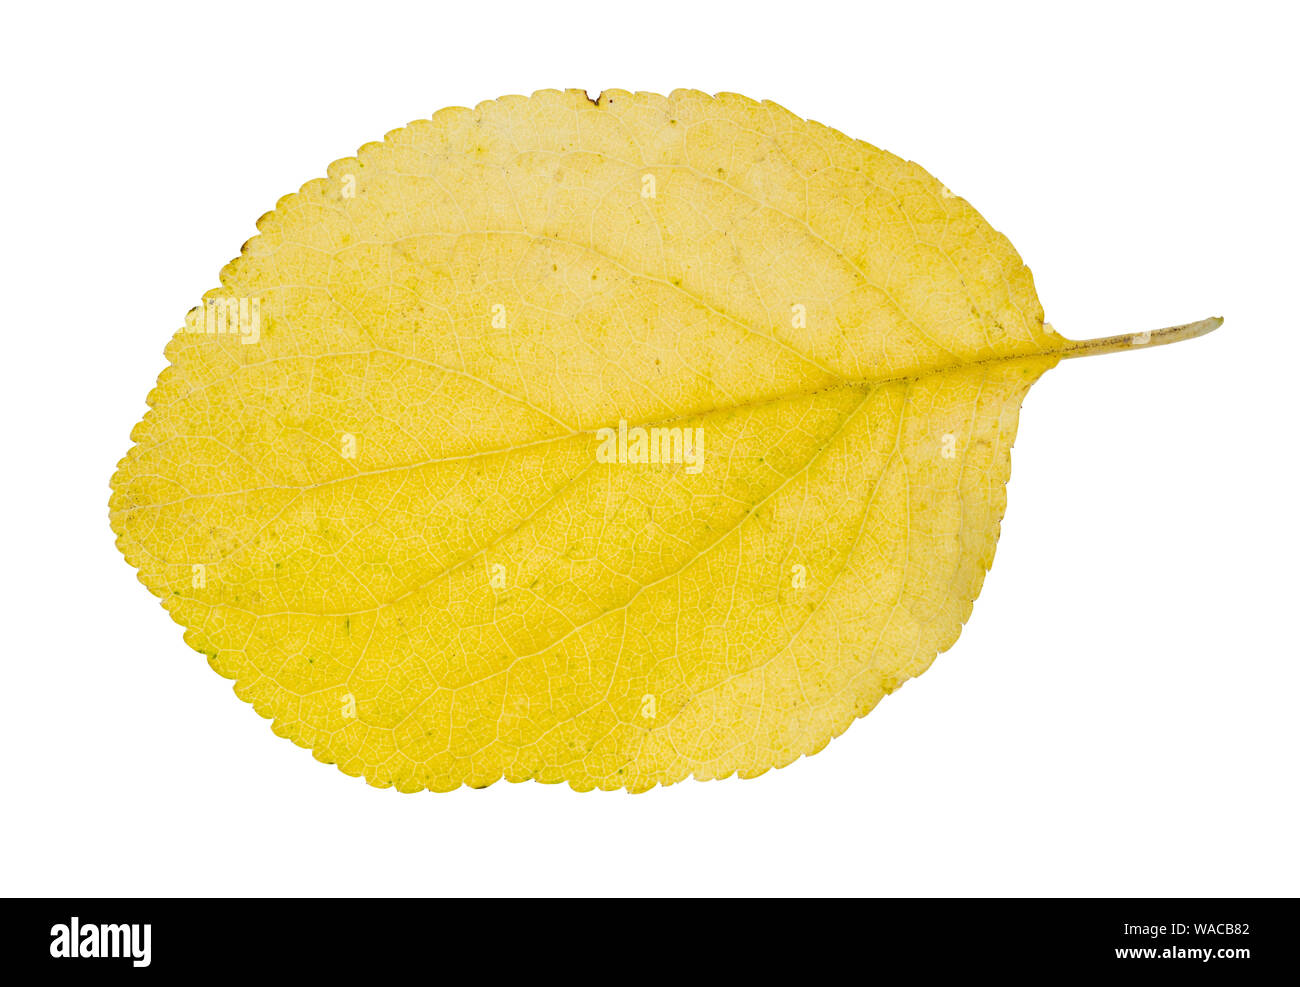 fallen yellow leaf of plum tree cutout of white background Stock Photo